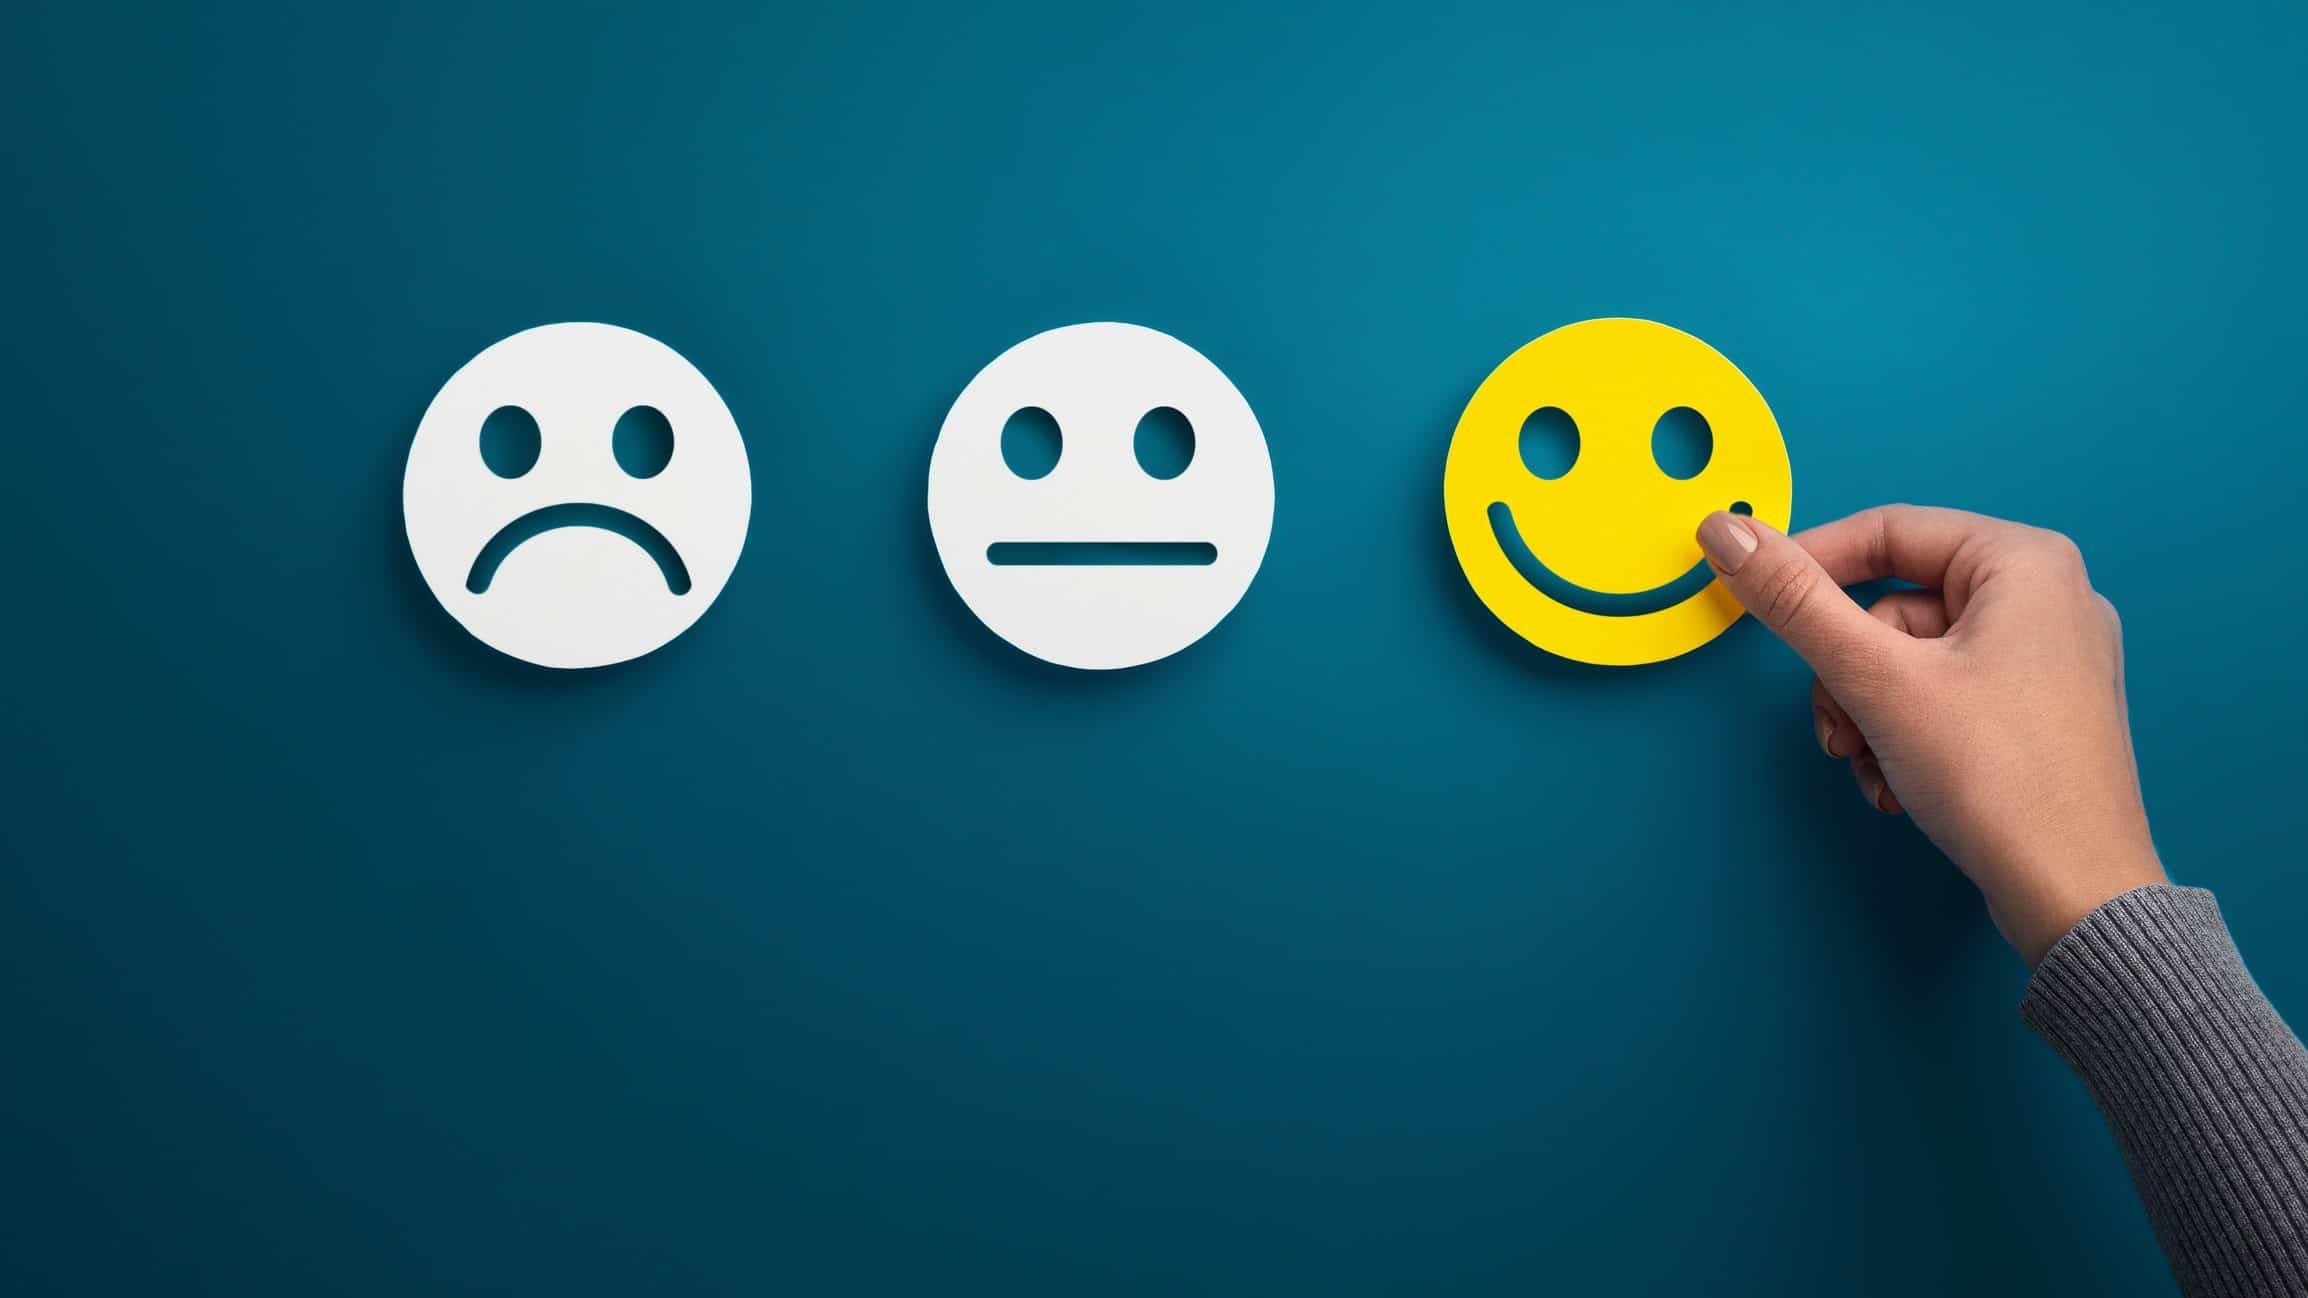 hand selecting happy face from choice of happy, sad and neutral signifying best ASX shares